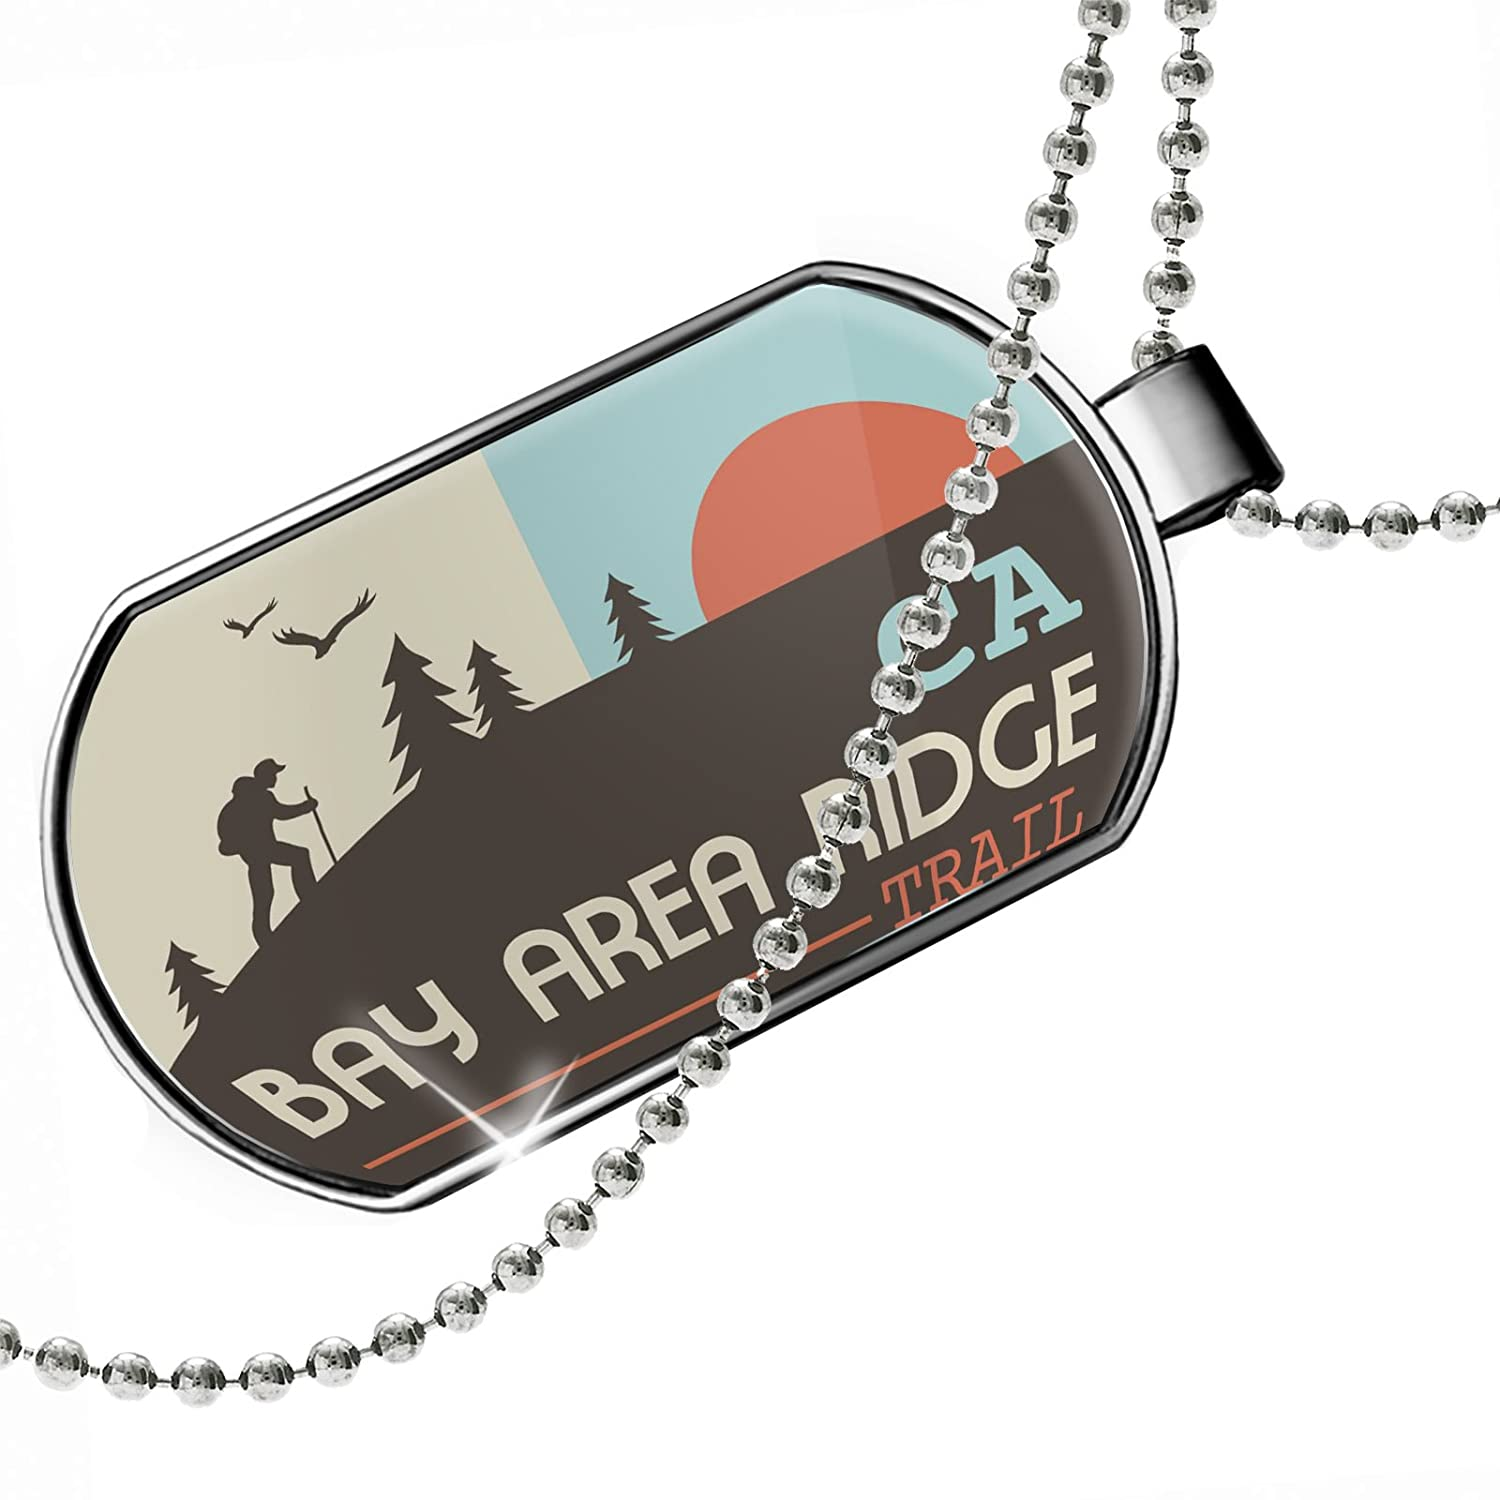 California Dogtag Necklace NEONBLOND Personalized Name Engraved US Hiking Trails Bay Area Ridge Trail